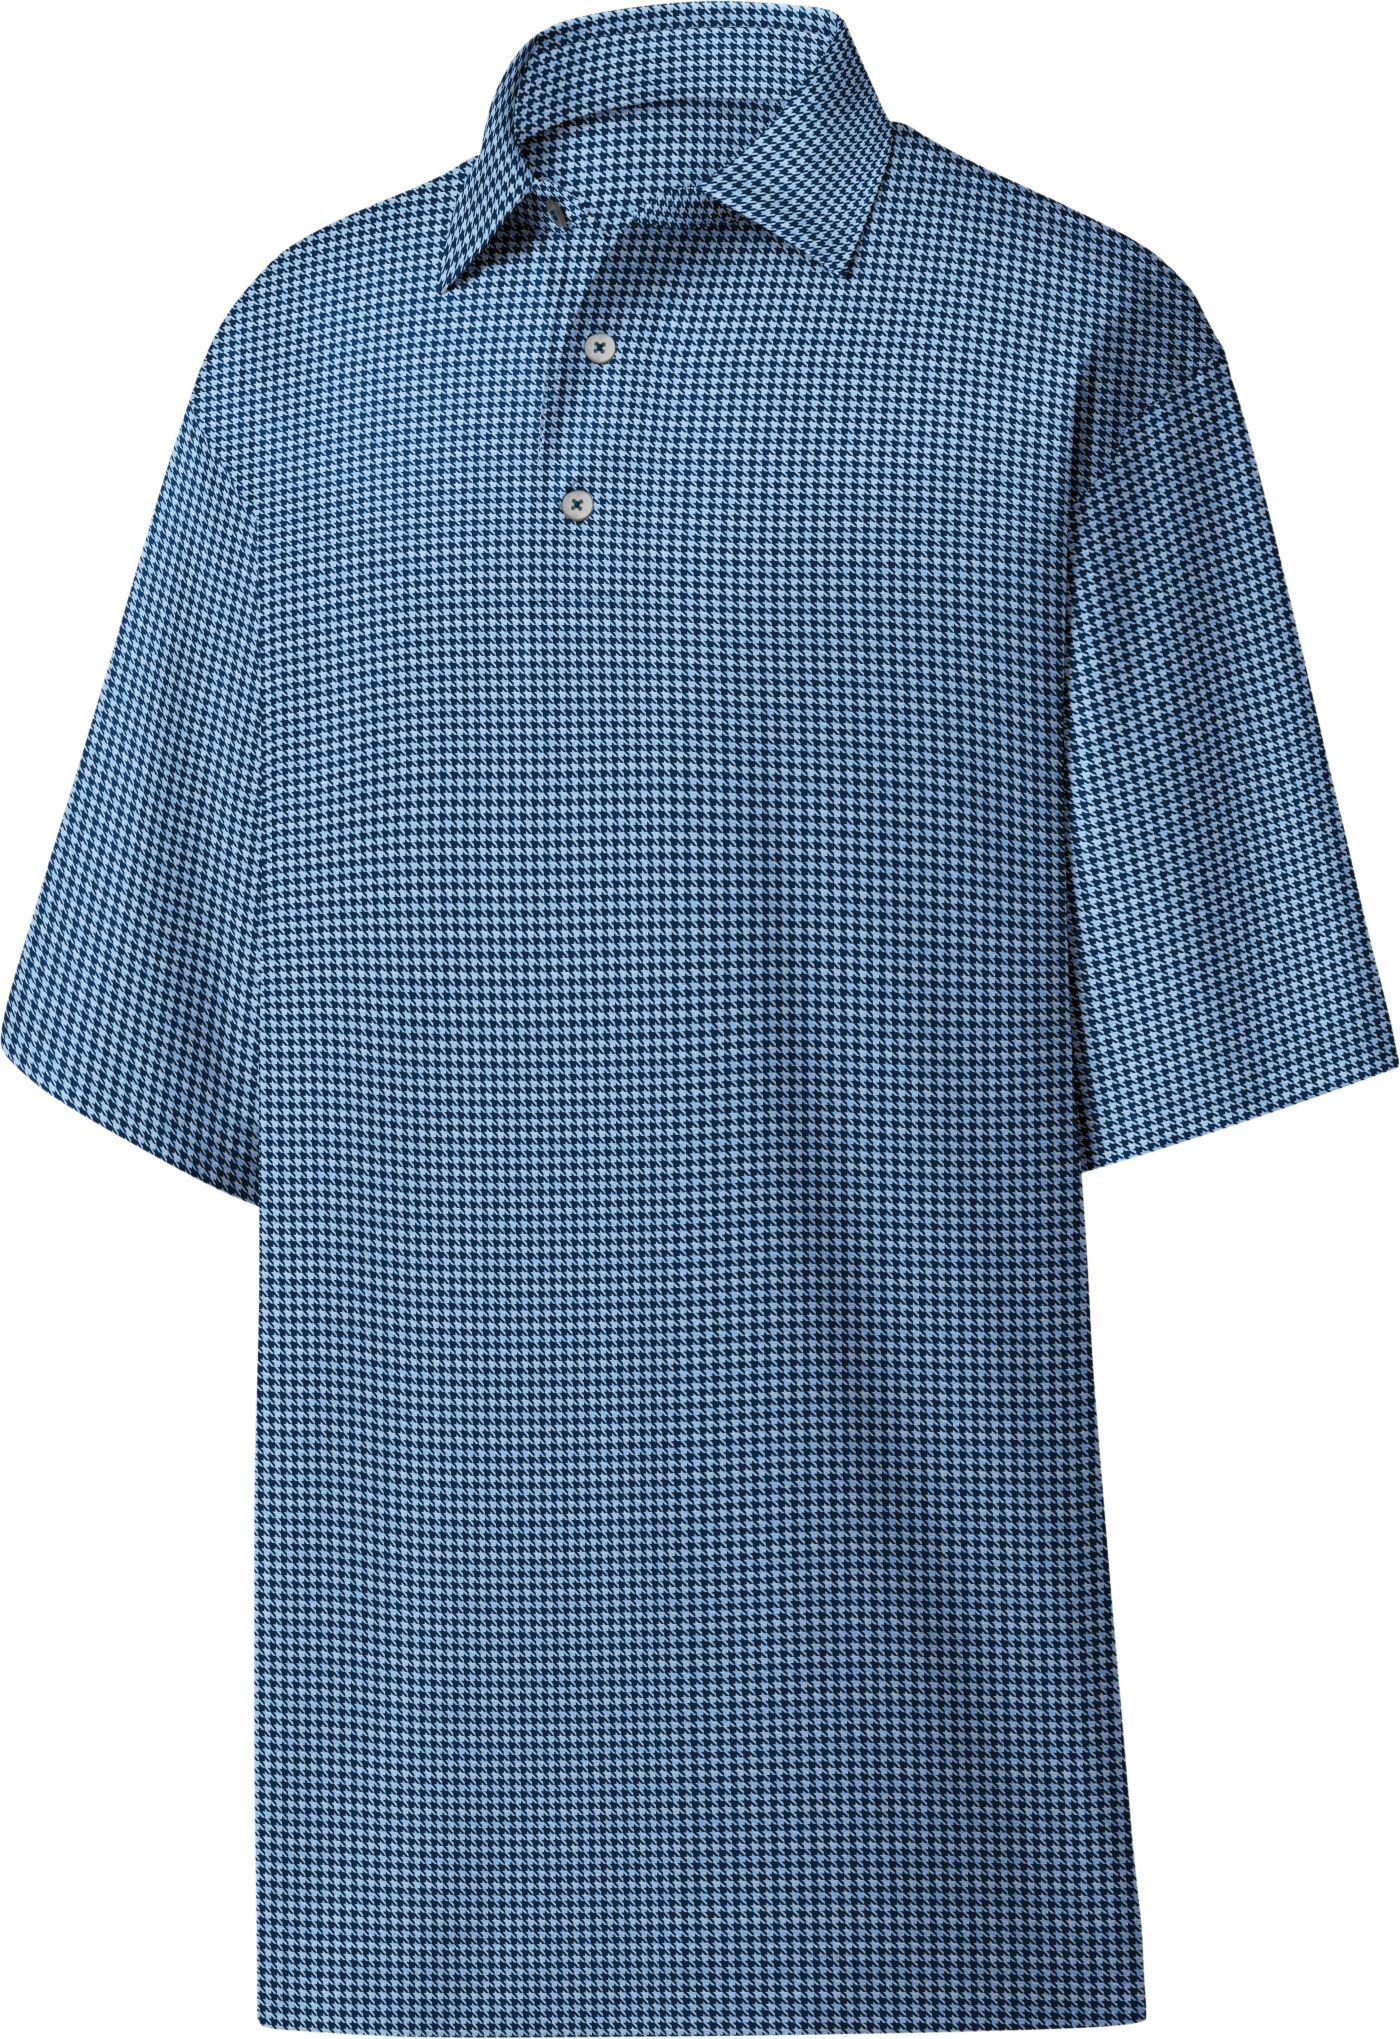 FootJoy Men's Heather Lisle Houndstooth Golf Polo